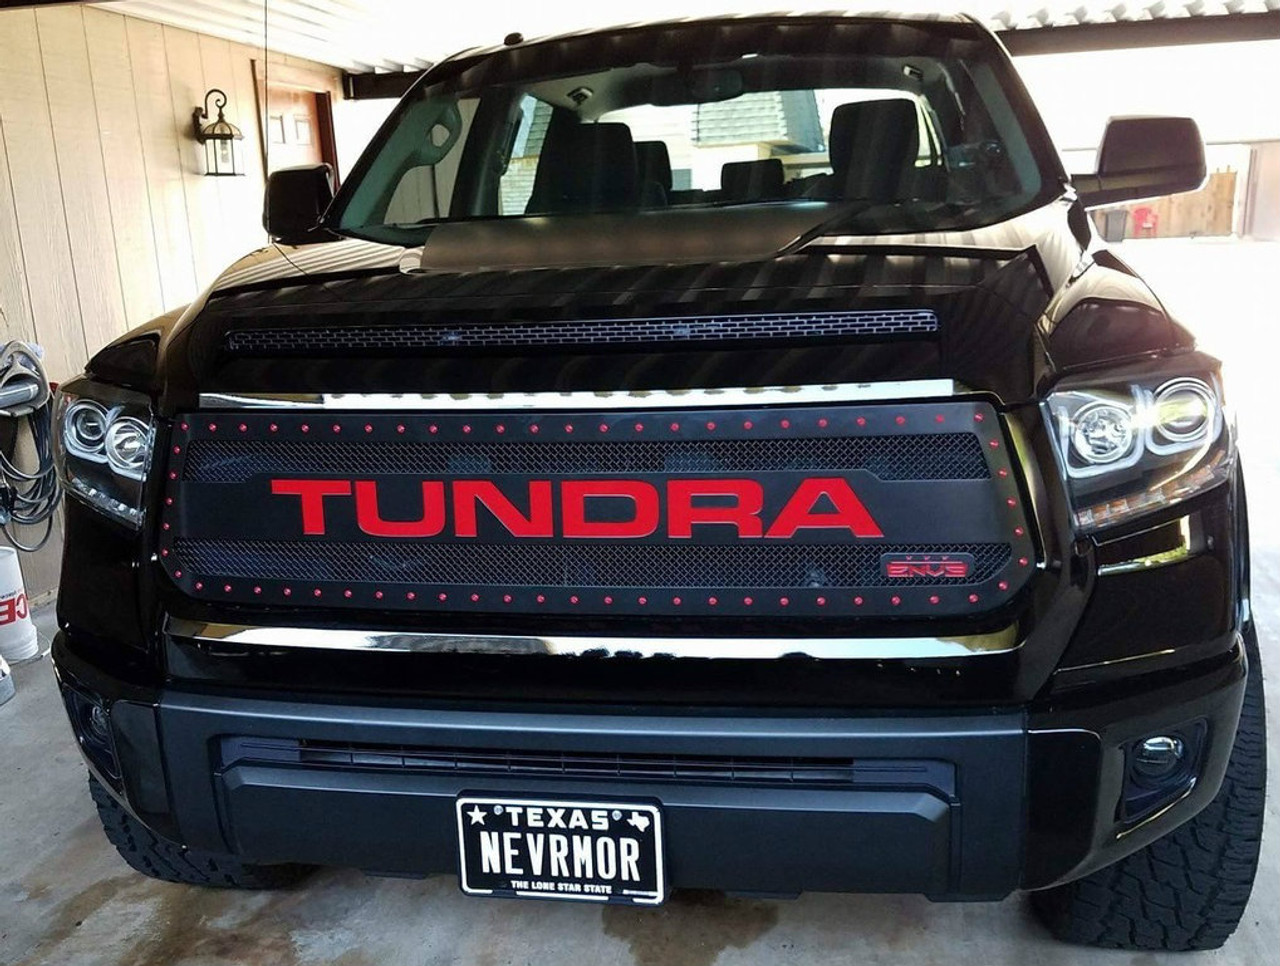 Used 2015 Toyota Tundra Double Cab Pricing - For Sale | Edmunds